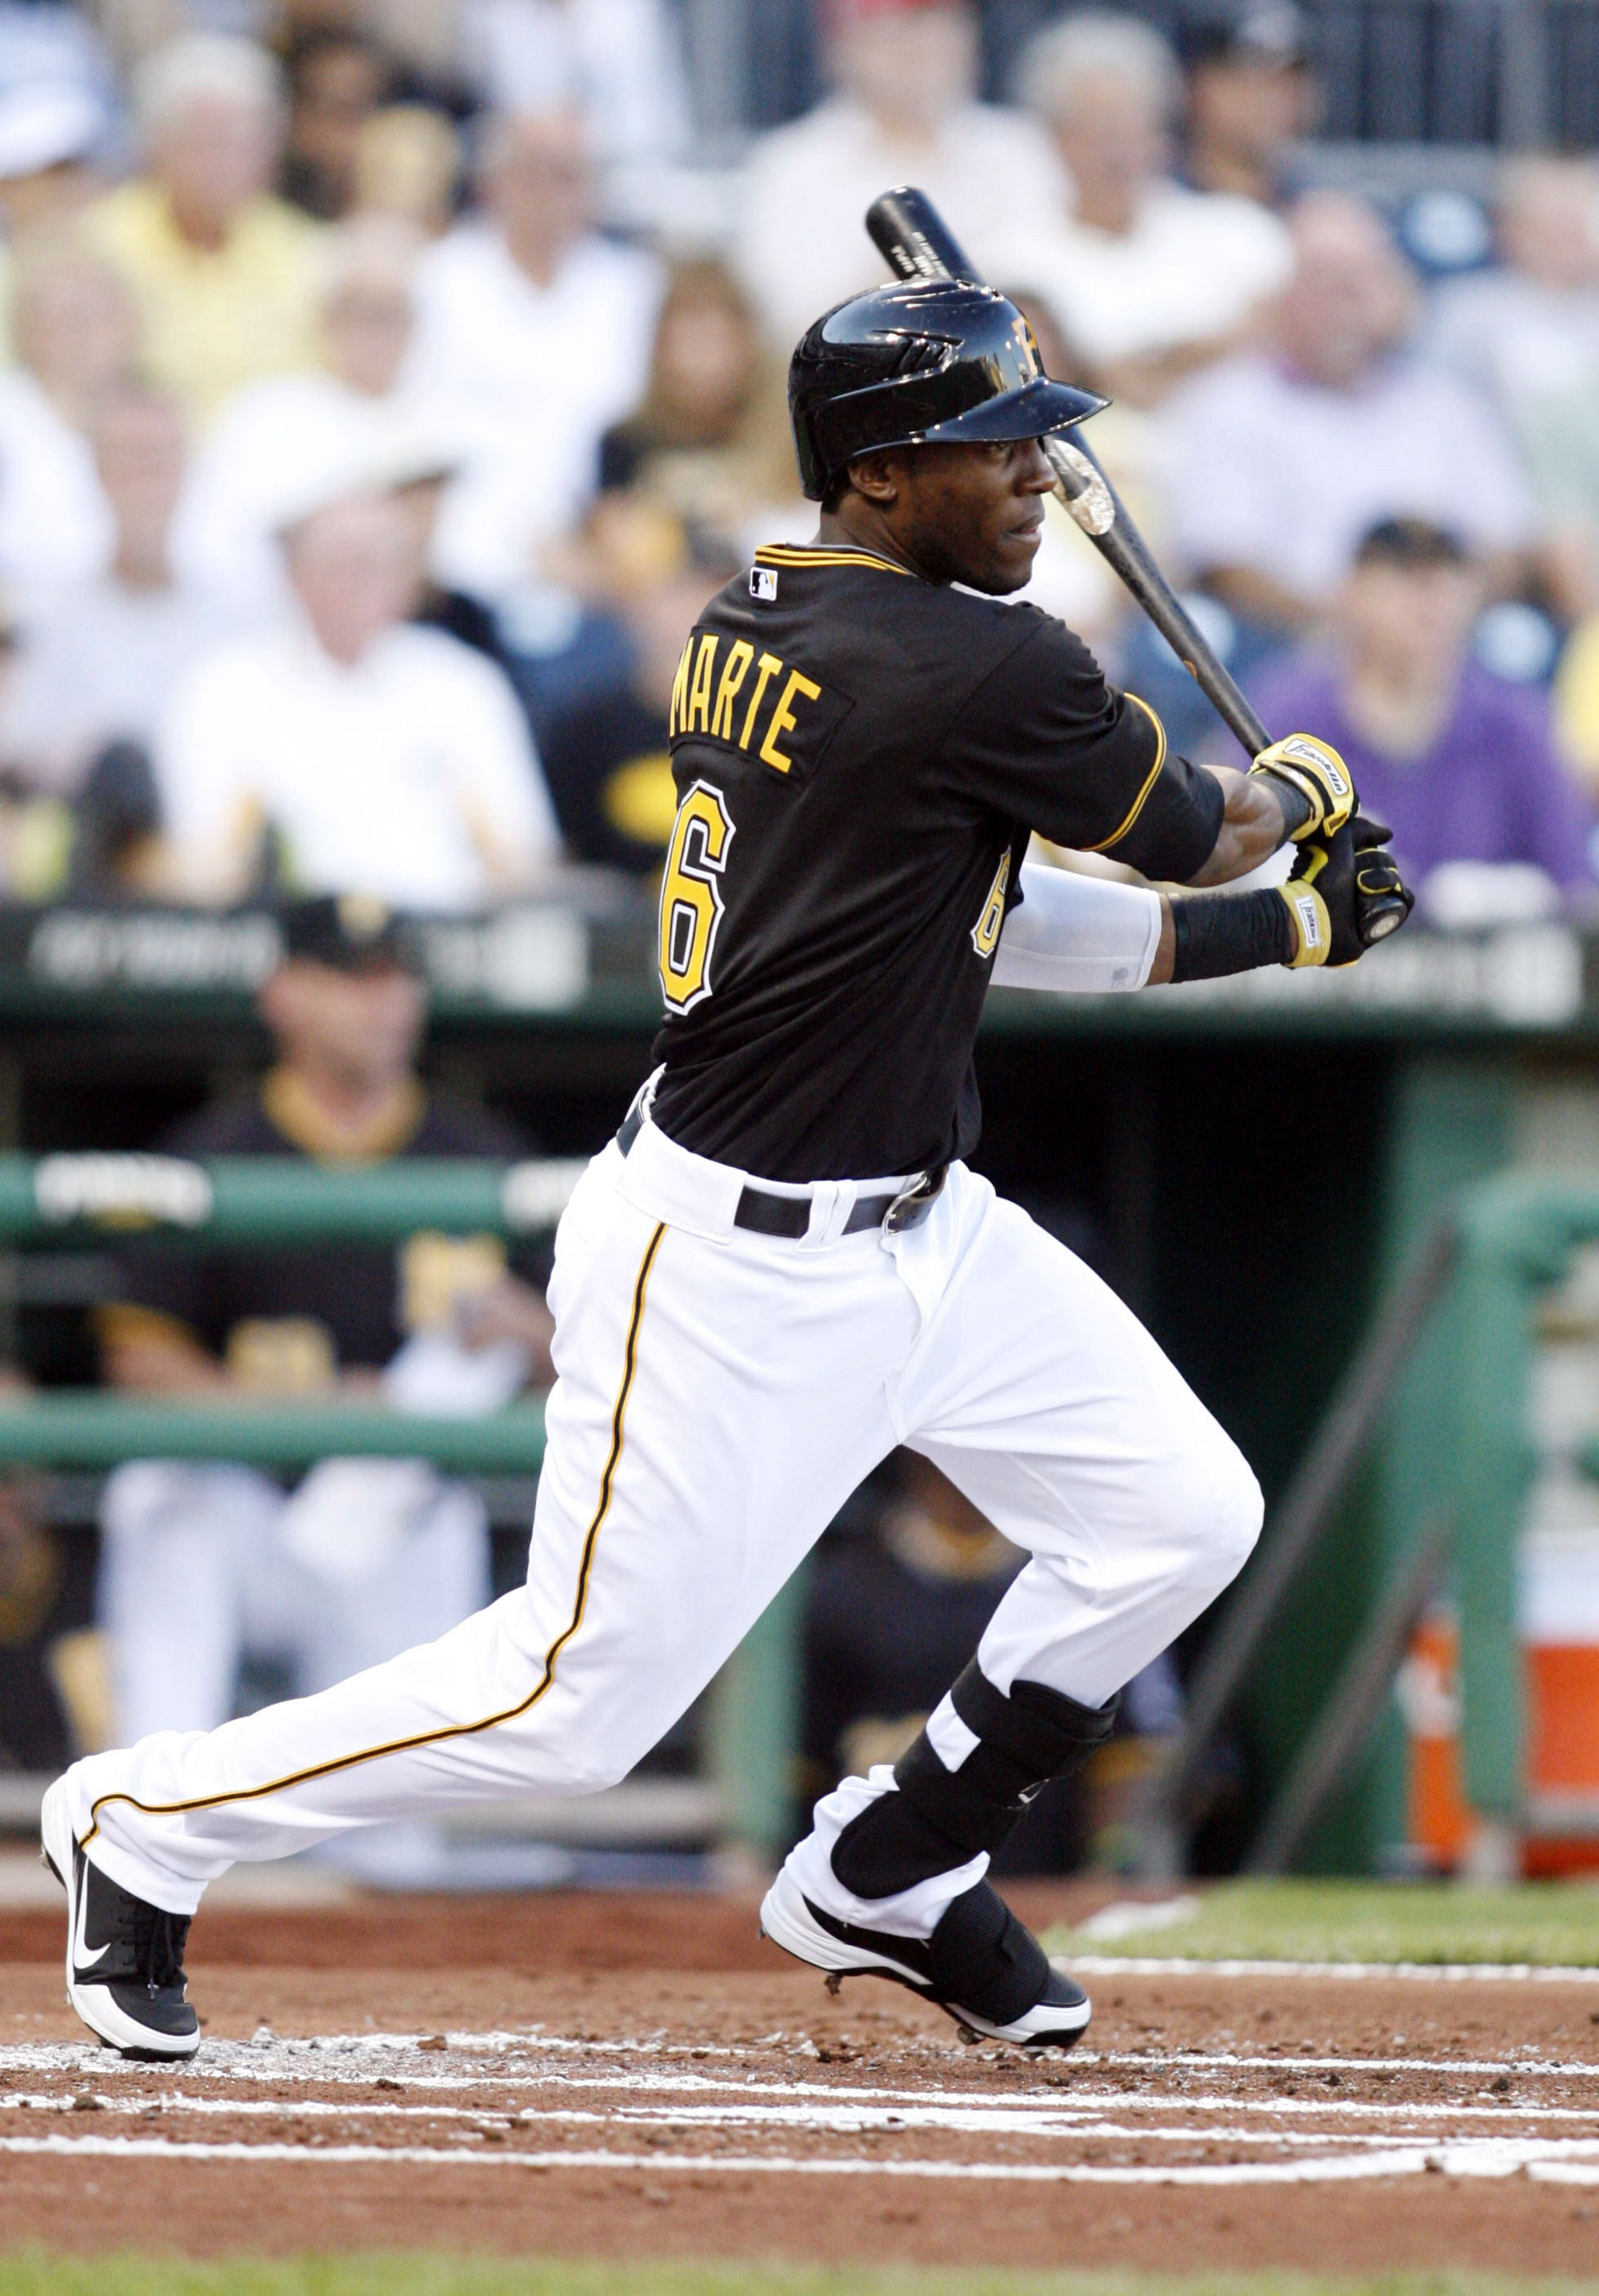 Starling marte photos photos cincinnati reds v pittsburgh pirates - Starling Marte The Future And Present Of Pittsburgh Baseball